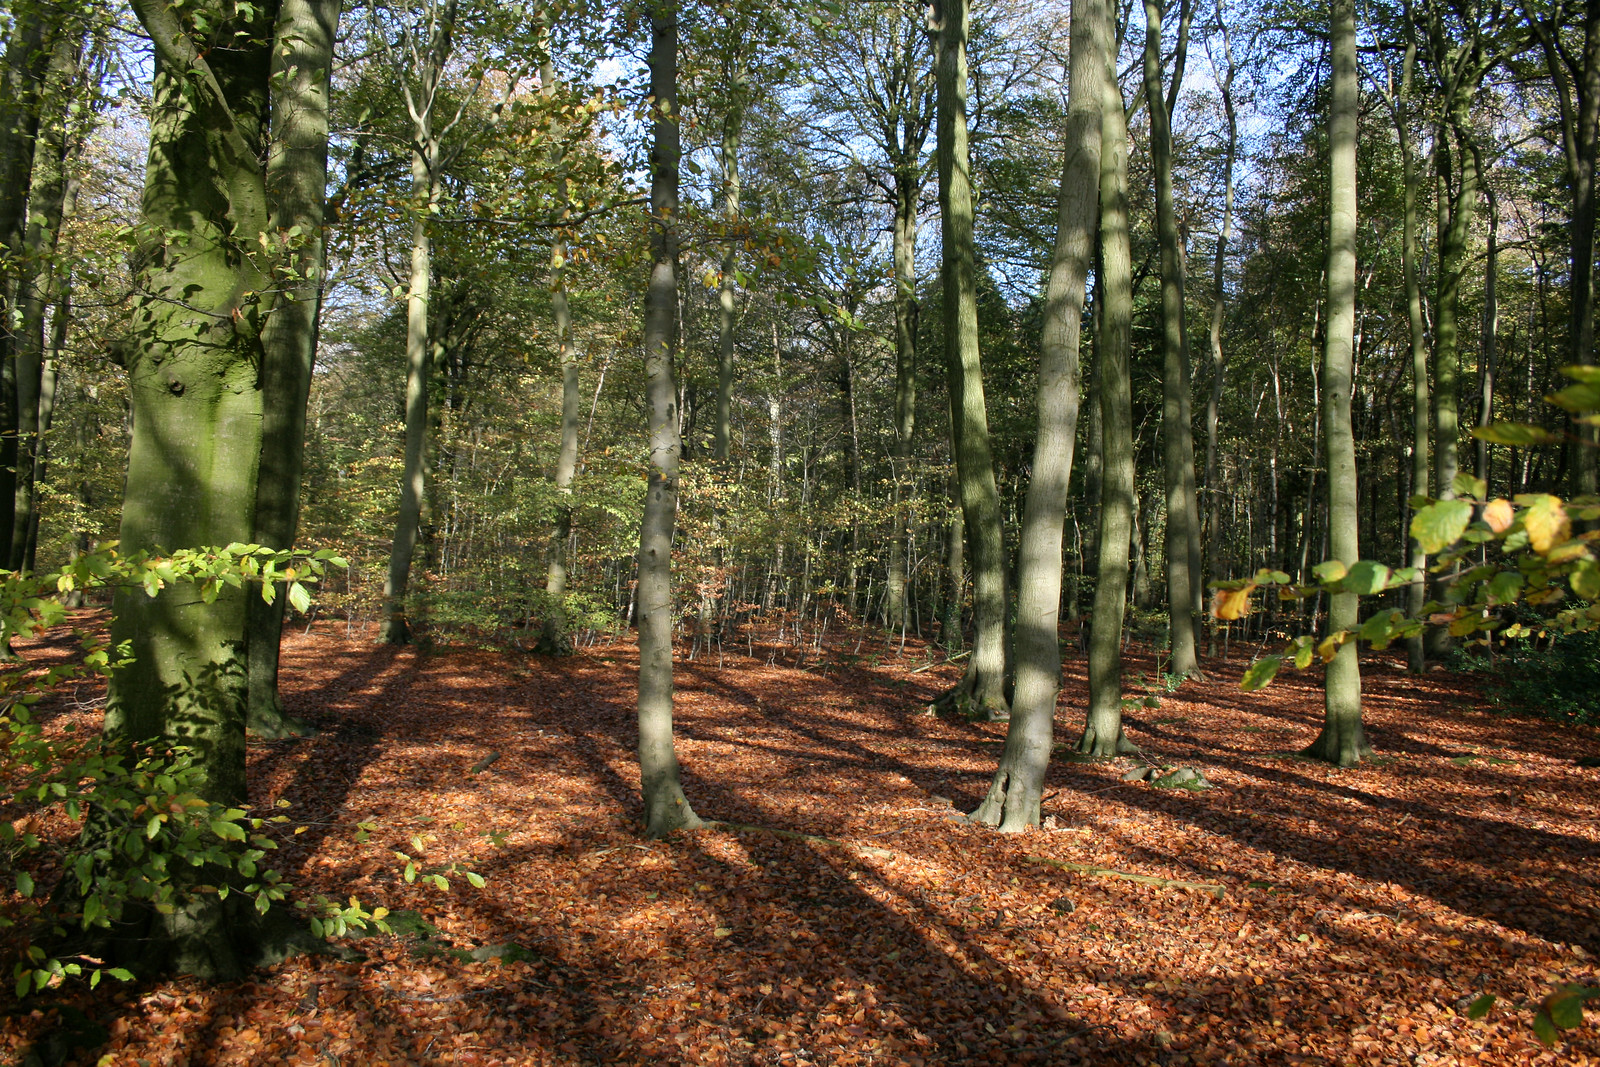 Monkton Wood